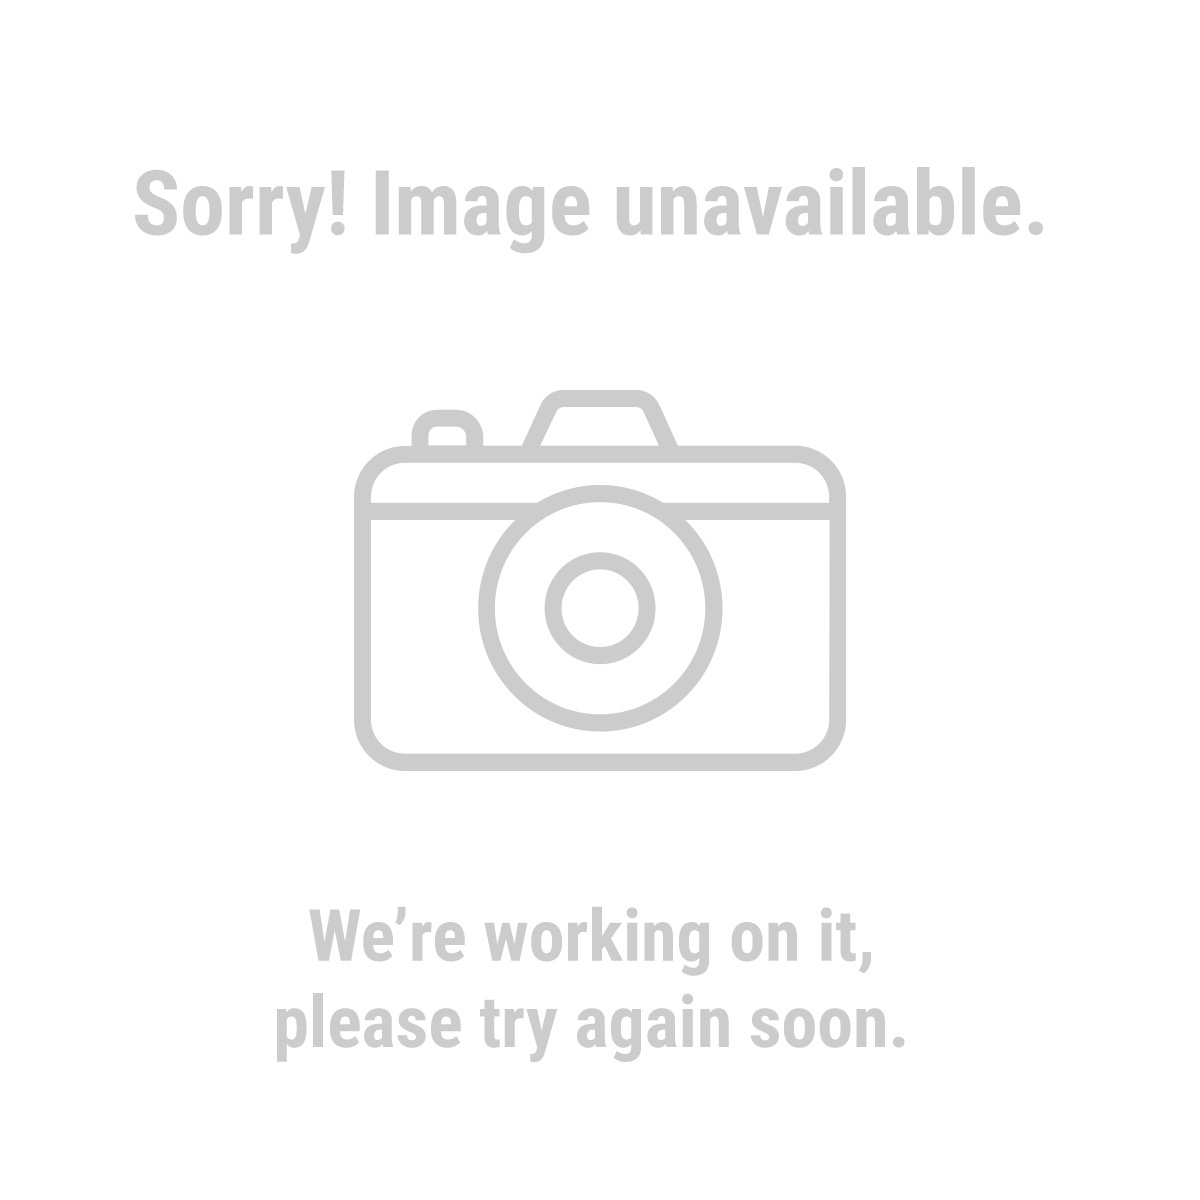 Predator Generators 63089 4000 Peak/3200 Running Watts, 6.5 HP  (212cc) Generator CARB